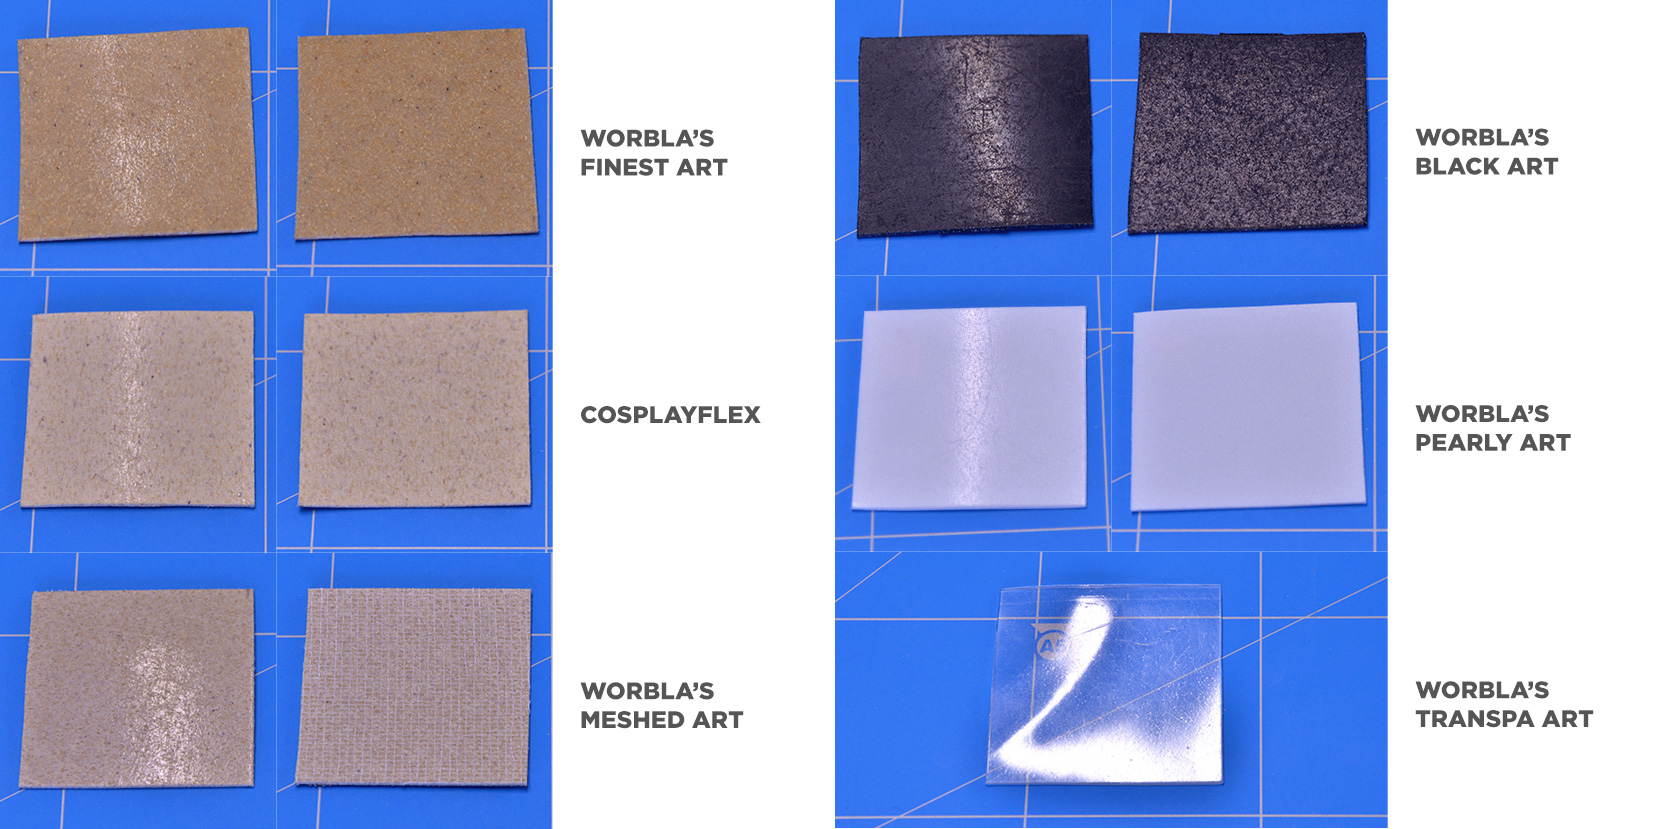 Comparison Worbla Cosplay